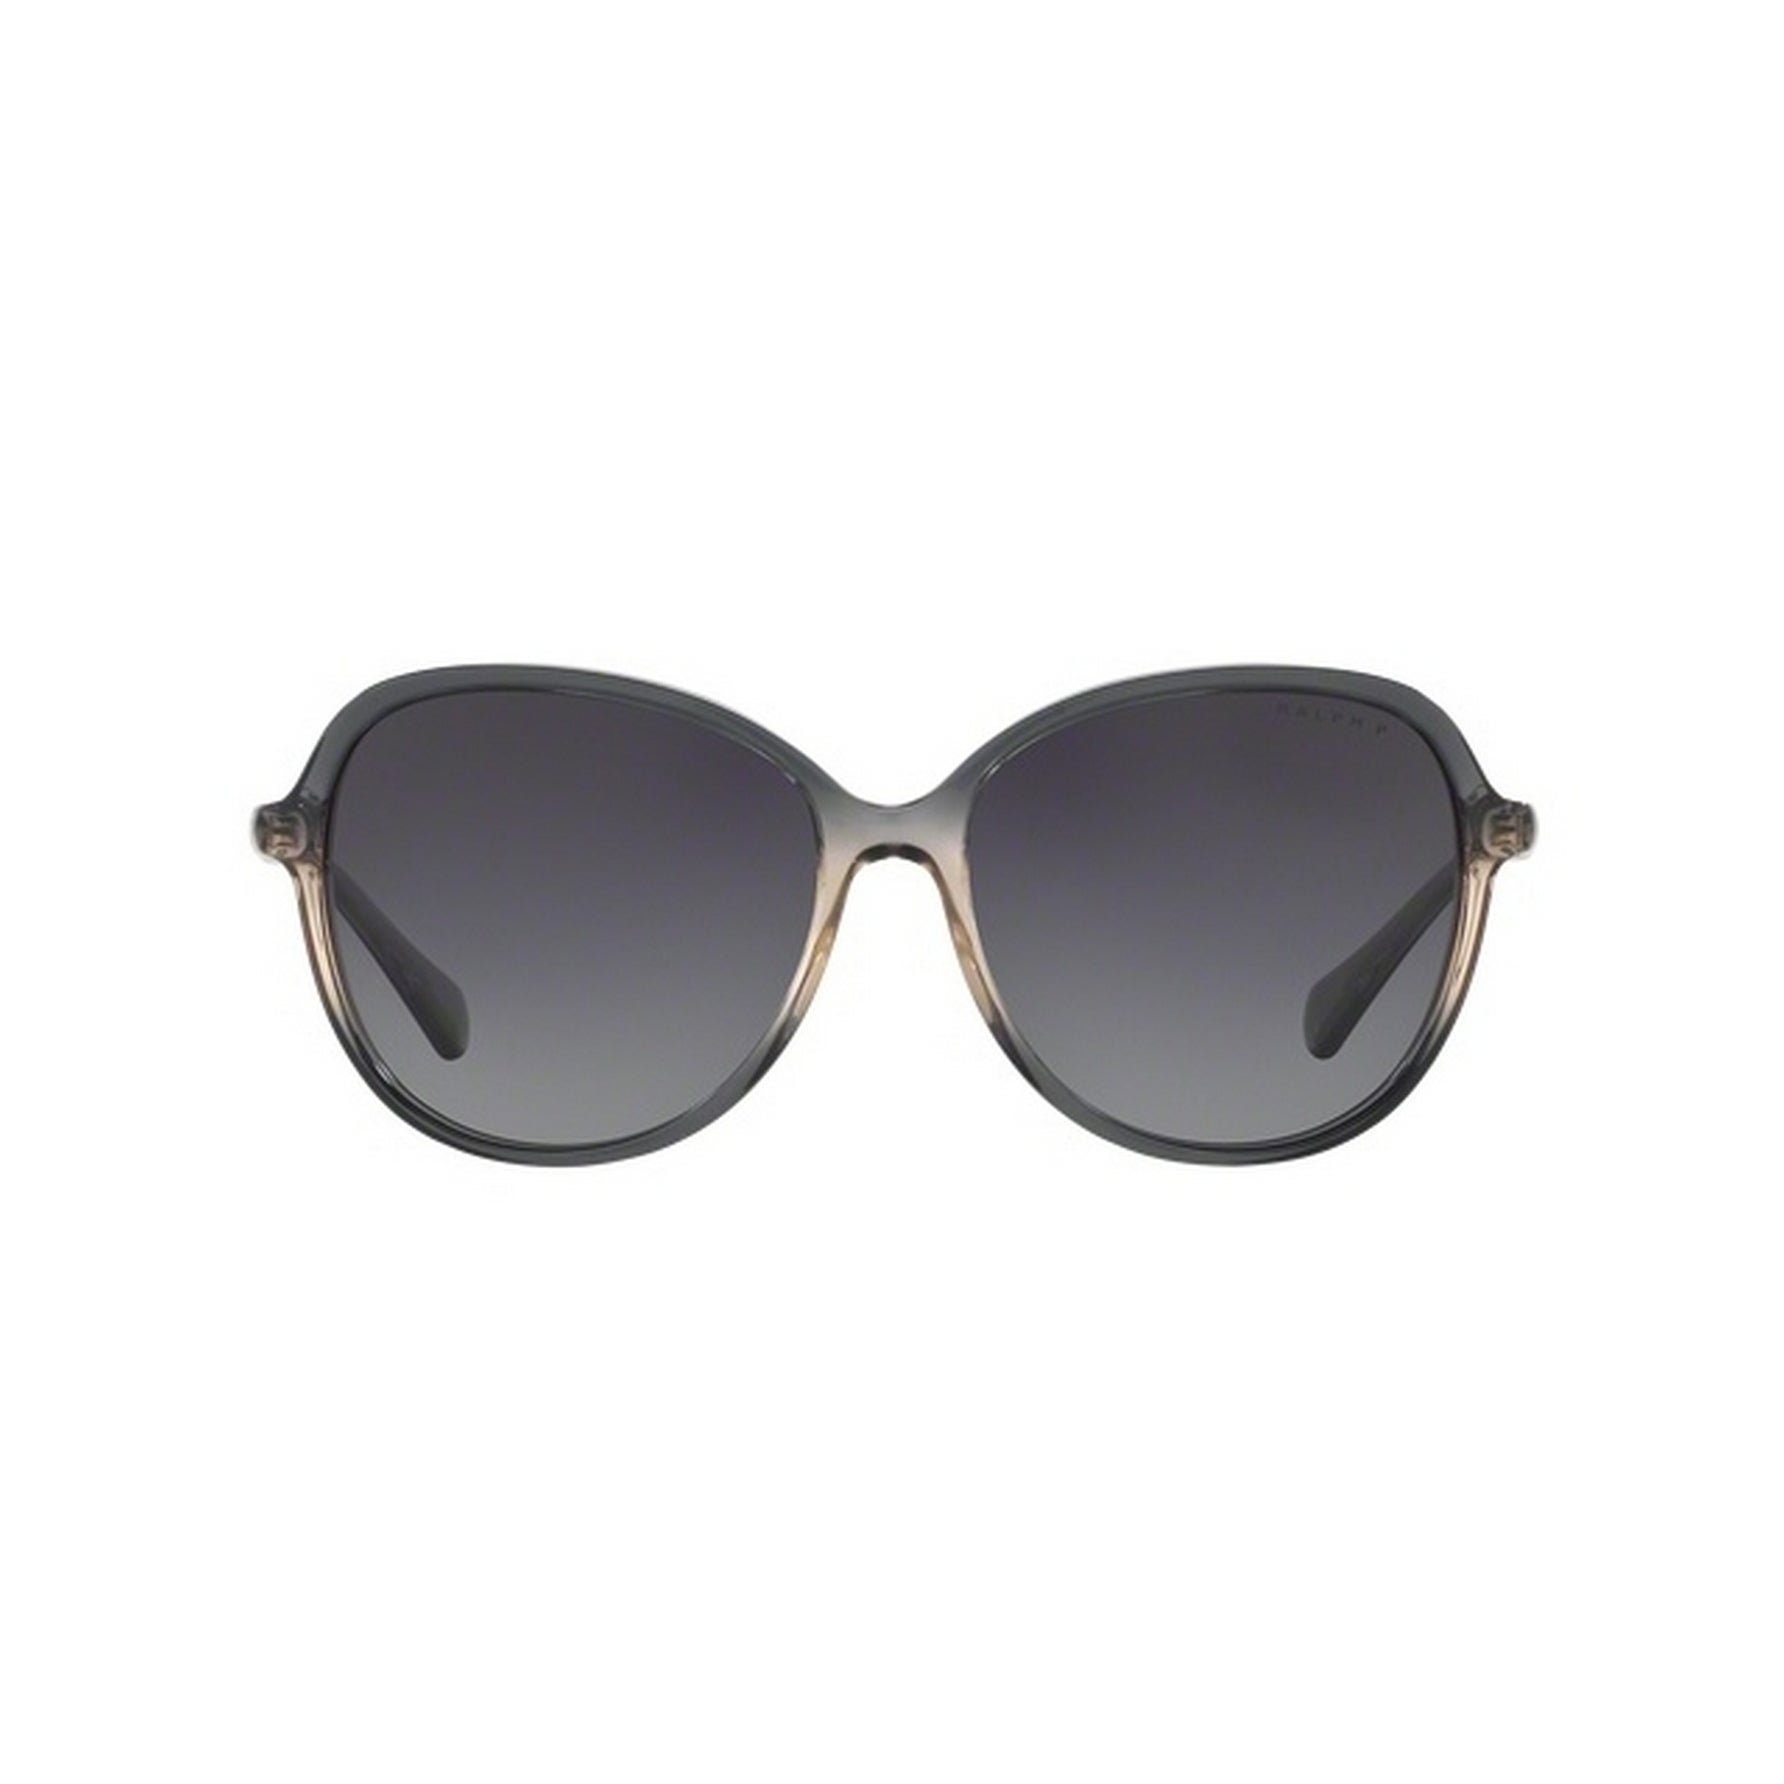 98894870164a Shop Ralph by Ralph Lauren Women's RA5220 1584T3 57 Round Plastic Grey Grey  Sunglasses - Free Shipping Today - Overstock - 14692702